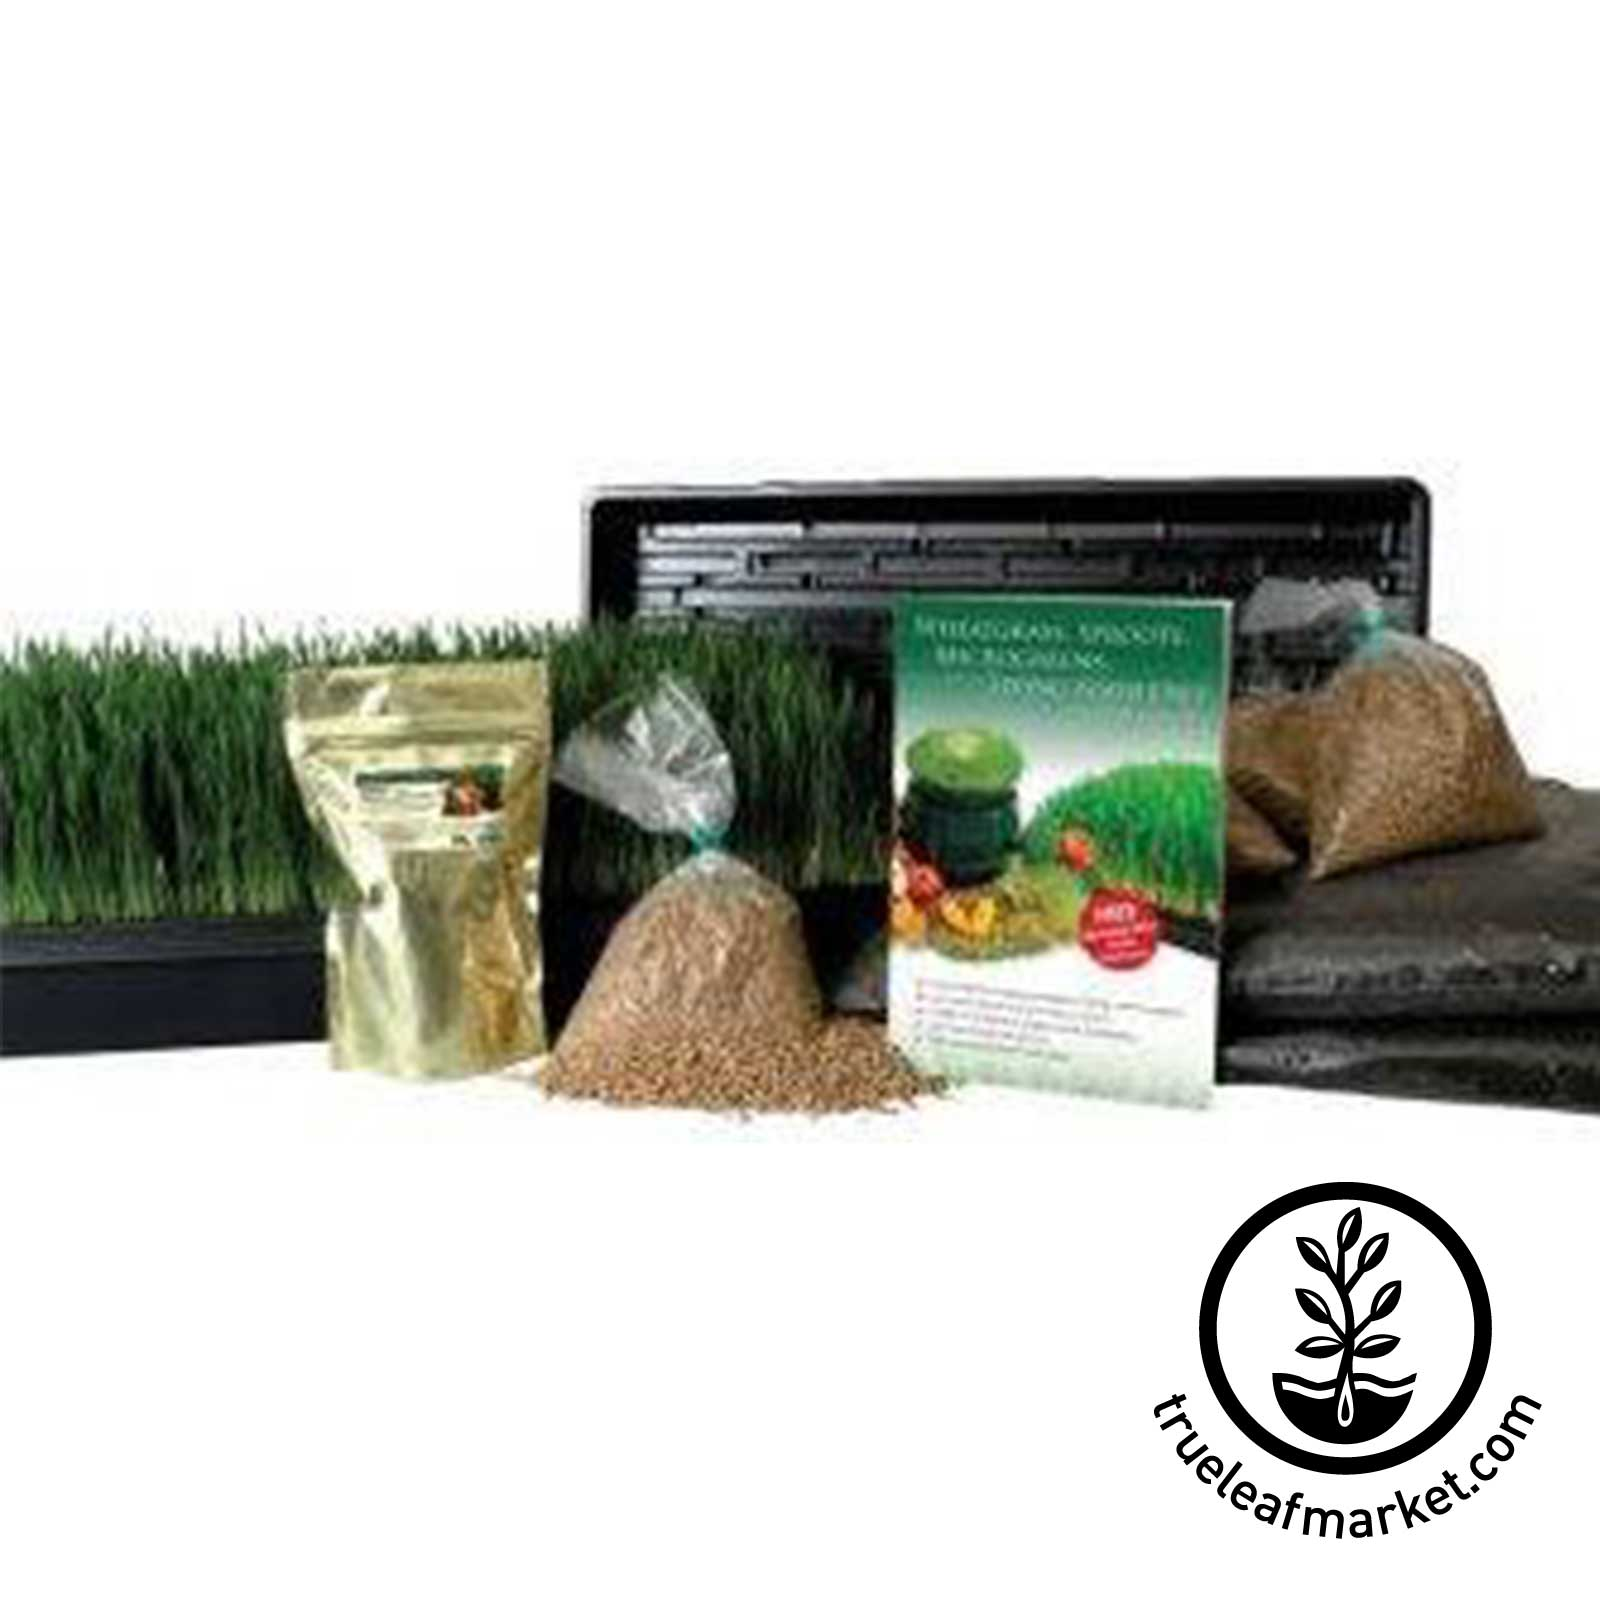 Available with Optional Wheatgrass or Barleygrass Kit